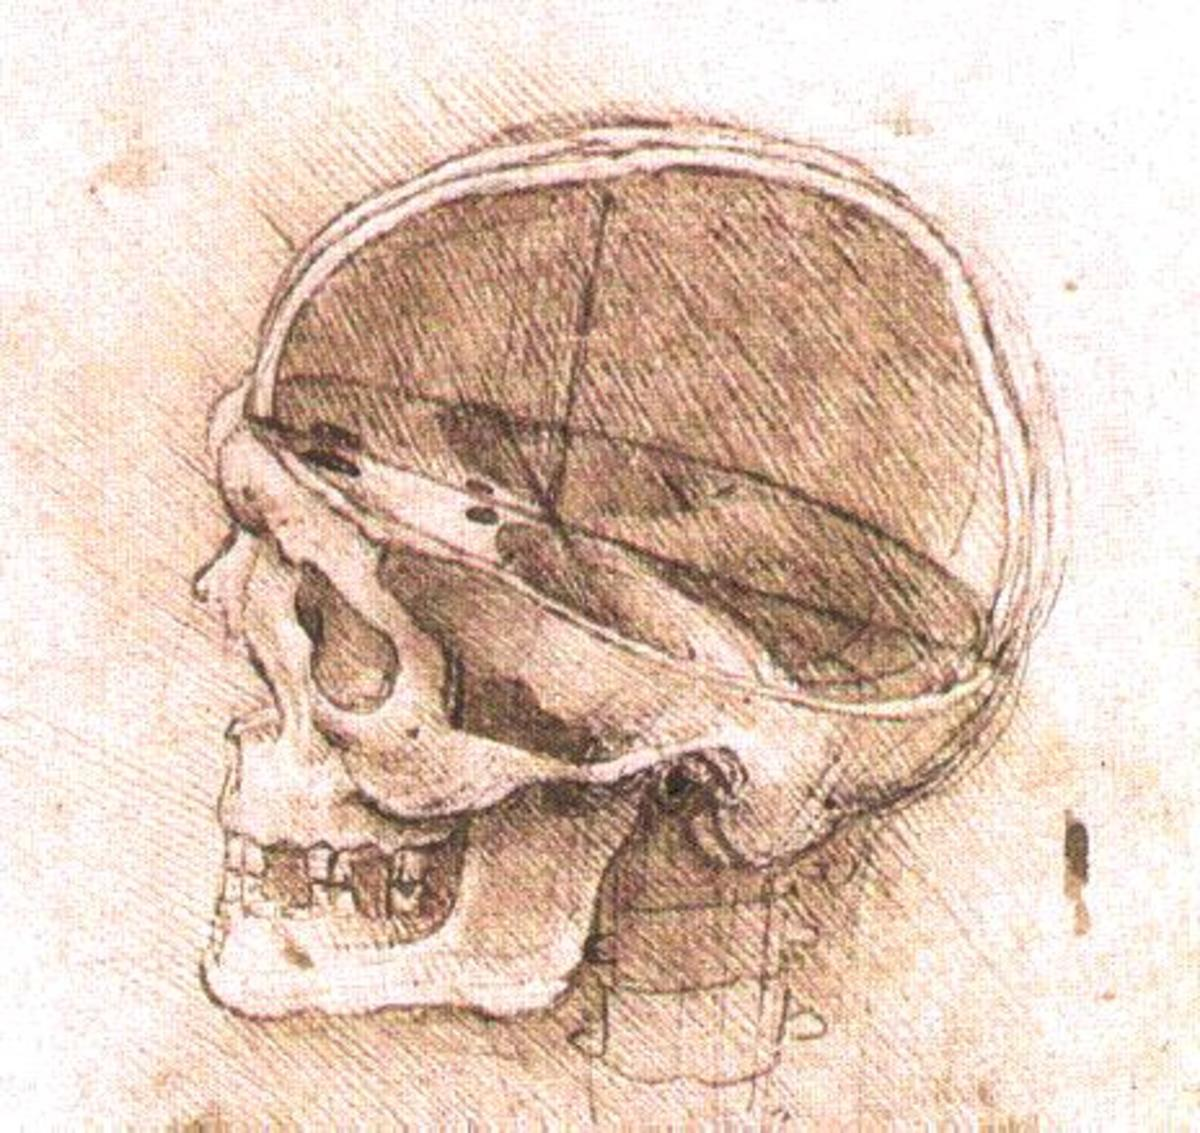 The Sensus Communis or Pineal Gland was   where Leonardo thought the soul resided.